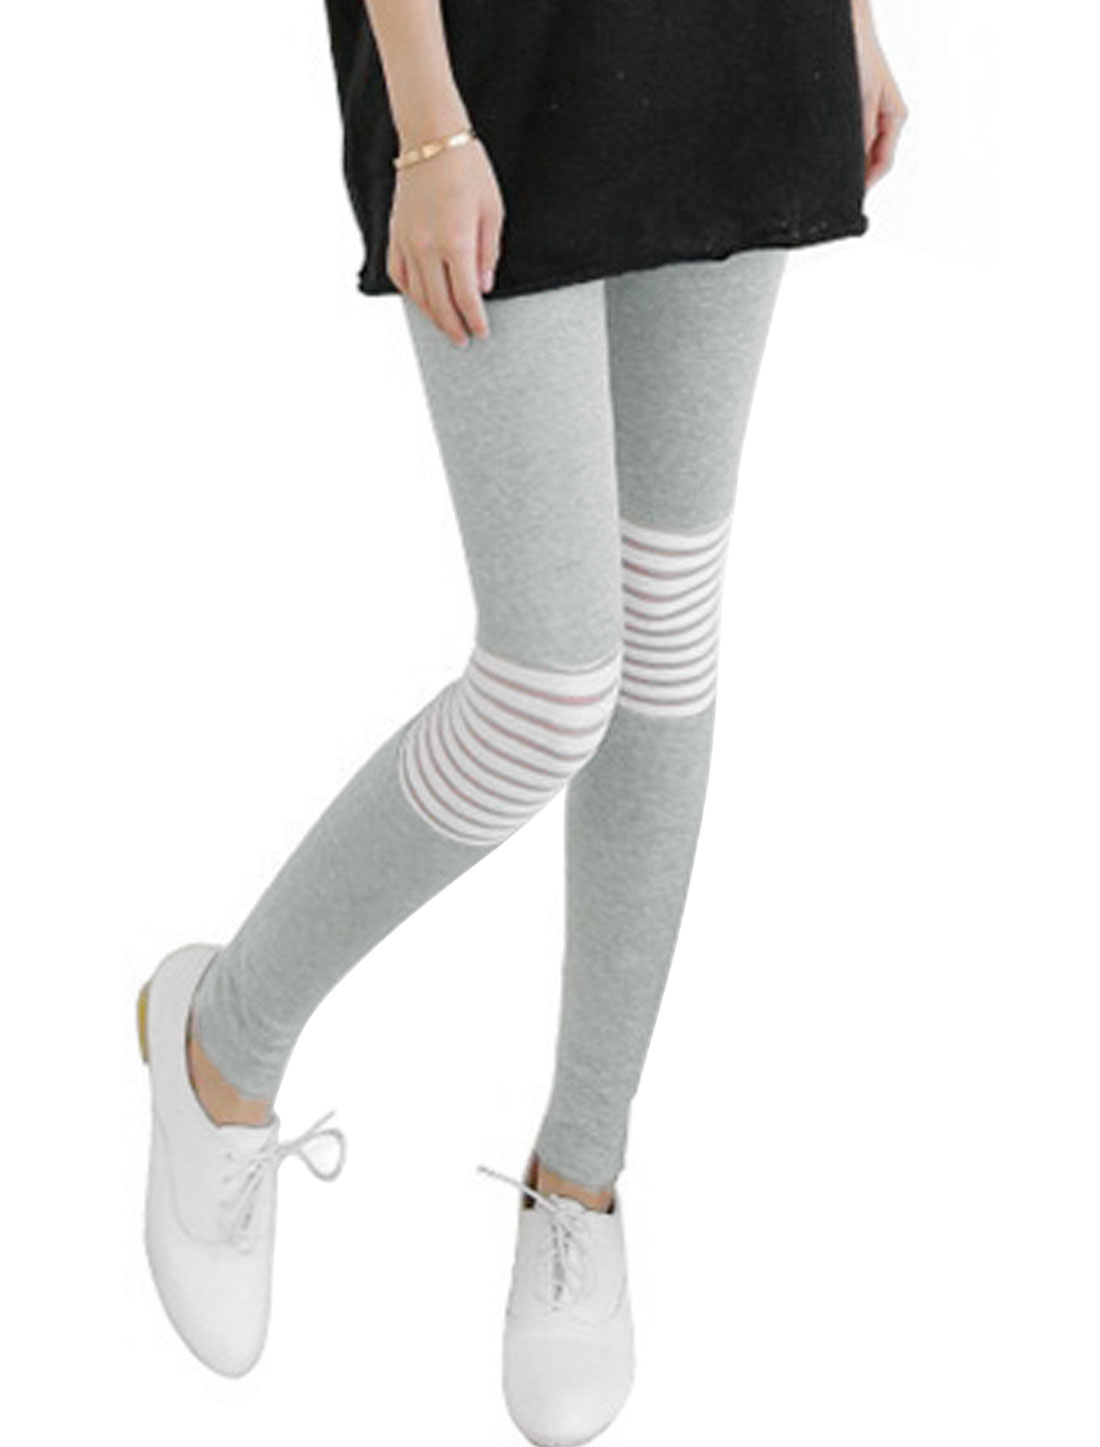 Women Stretchy Waist Horizontal Stripes Design Casual Leggings Light Gray XS